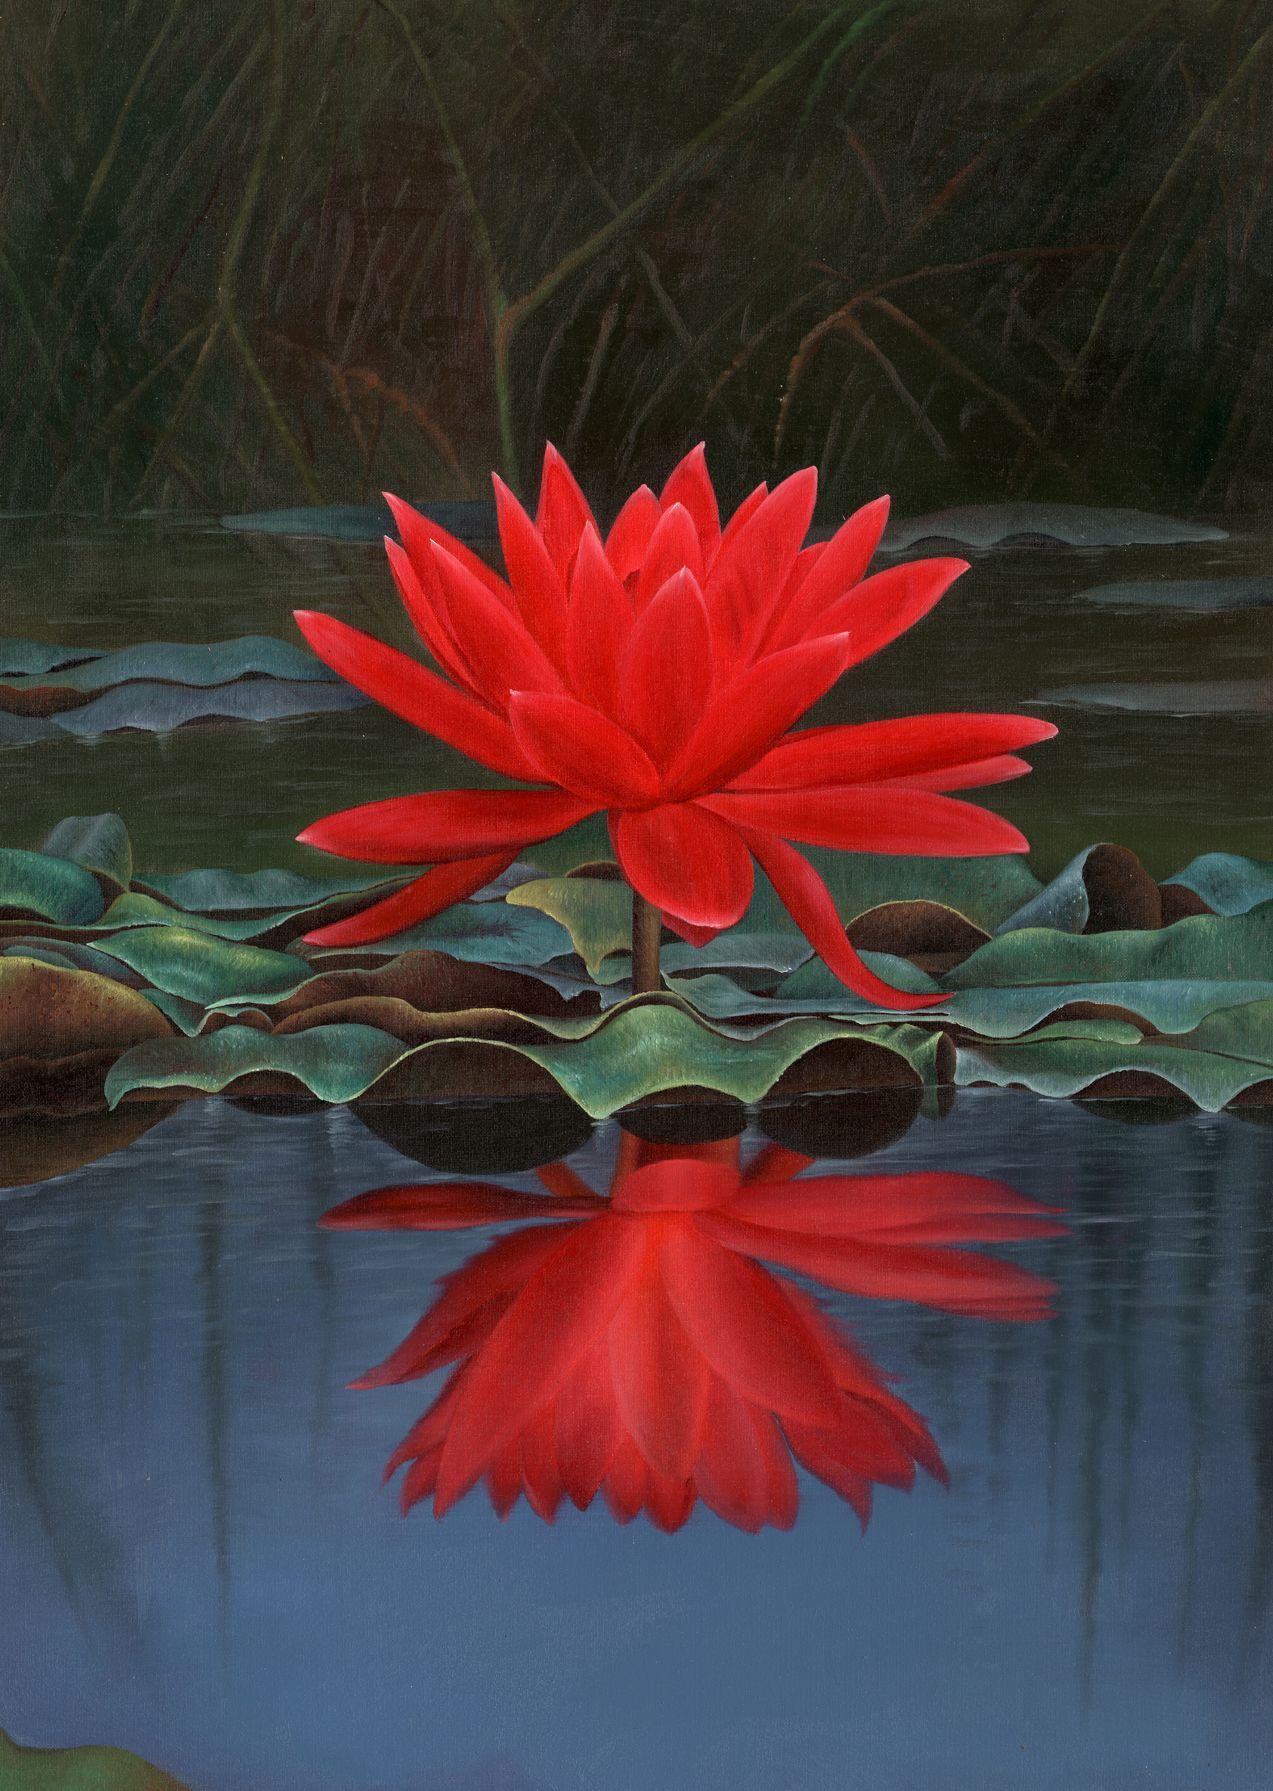 exotic flower photos free | Exotic Red Lotus Flower Free Wallpaper ...